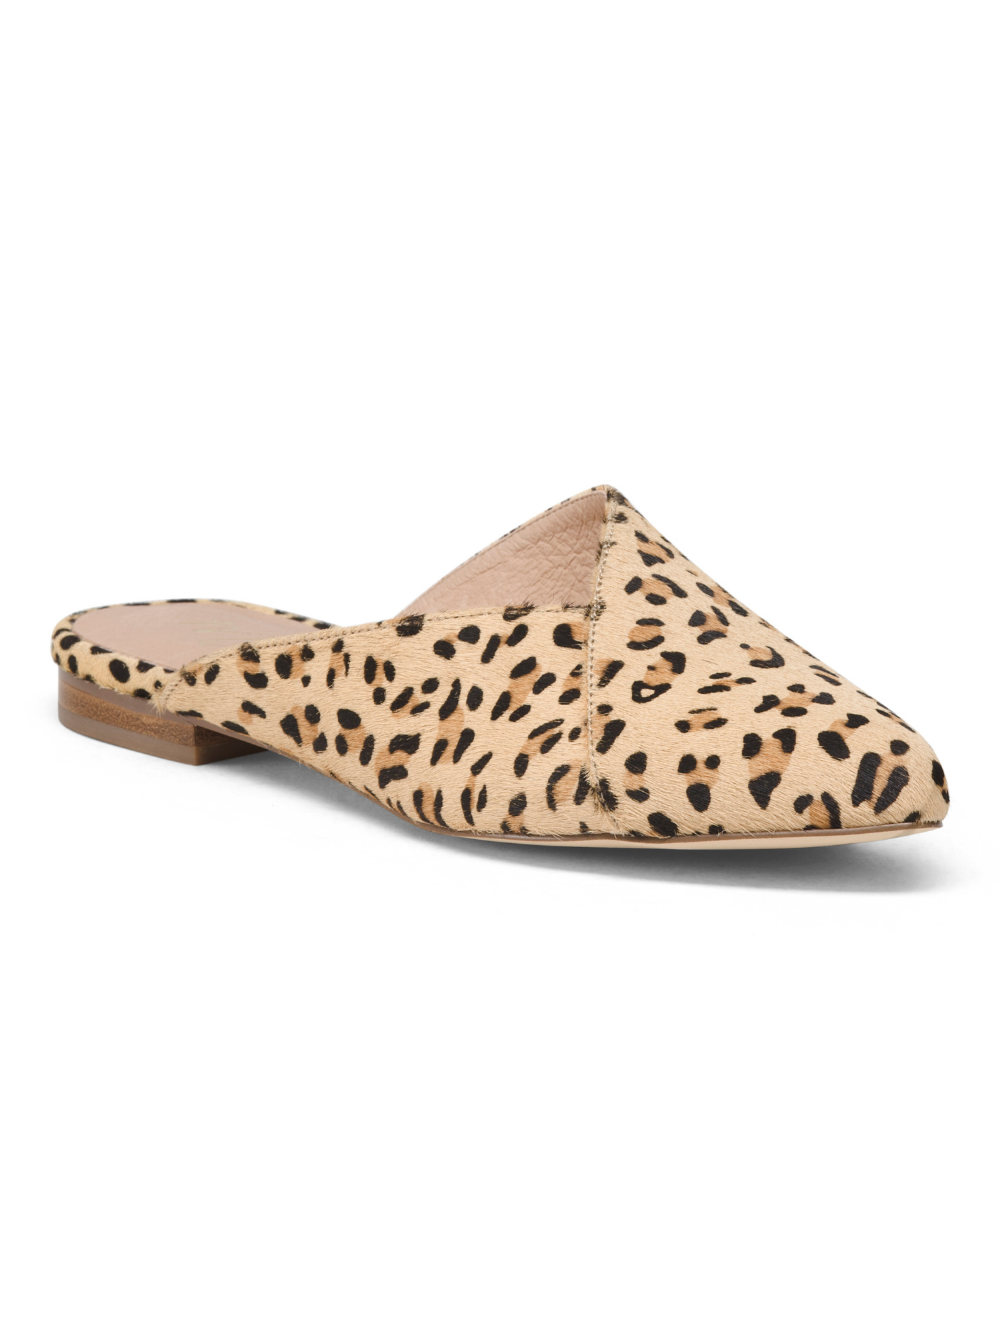 Haircalf Leopard Mules   Mules shoes